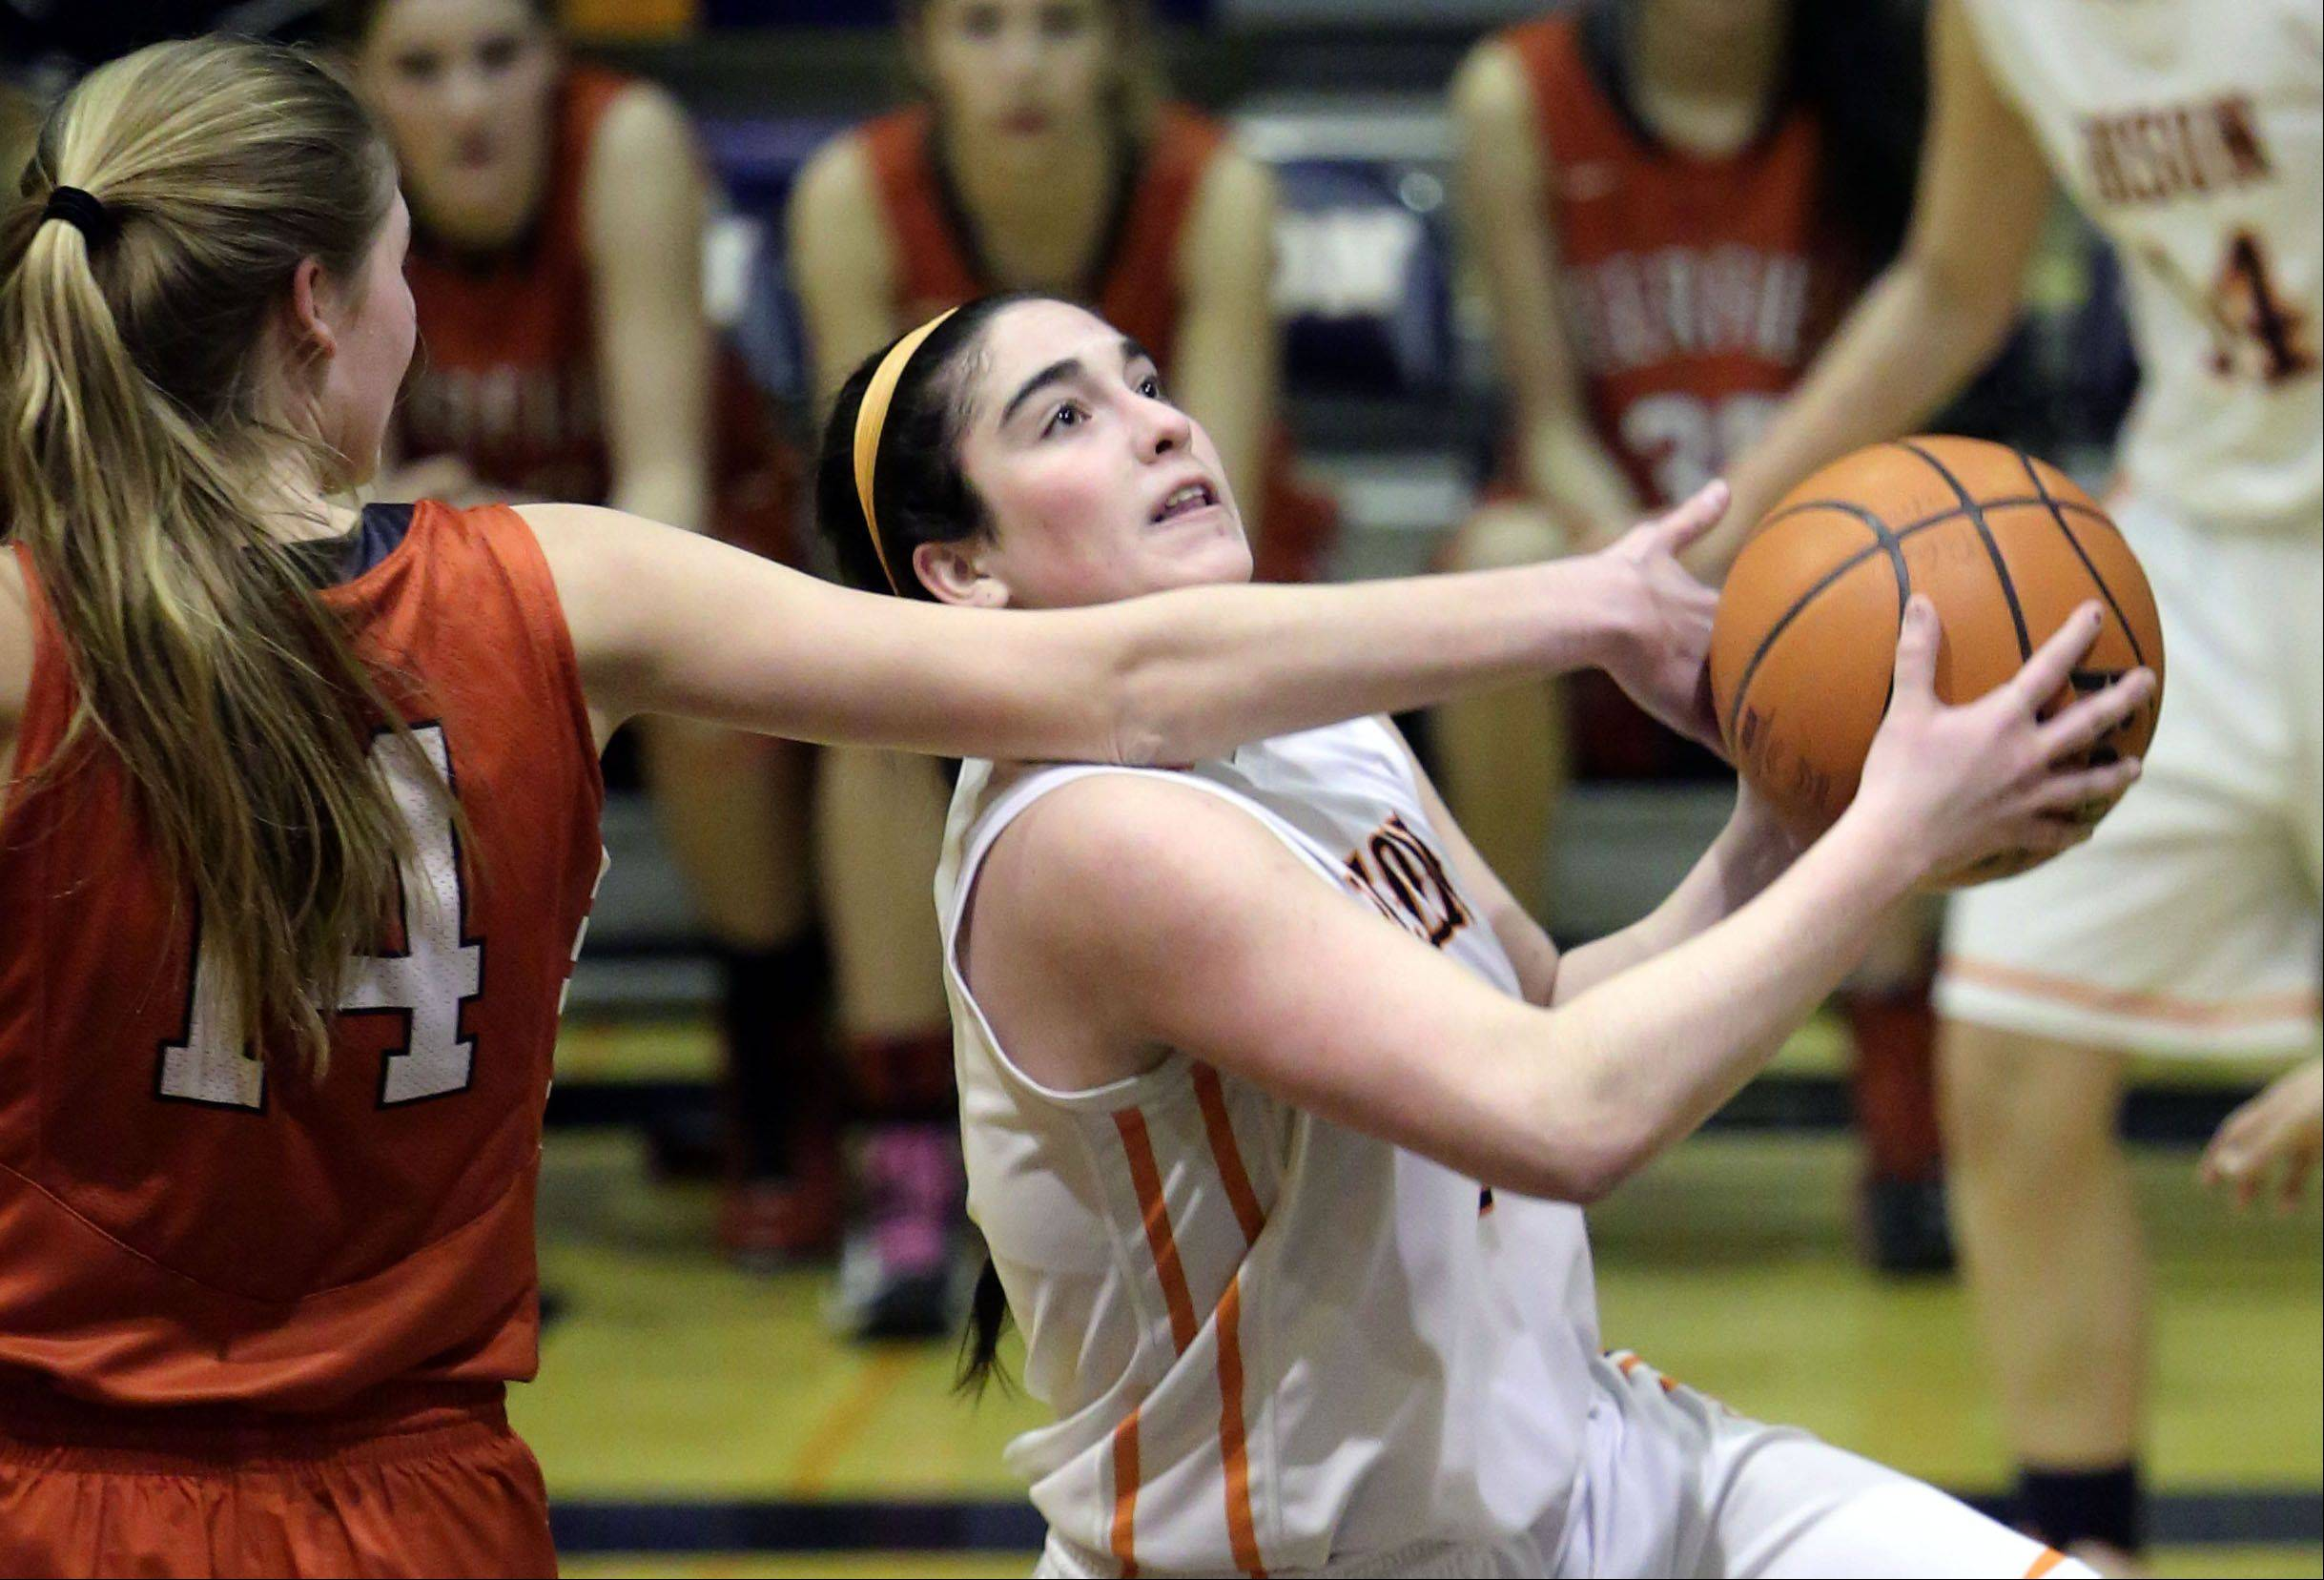 Buffalo Grove's Julie Jambrone, right, powers past Deerfield's Monica Fishbein during Monday's game in Buffalo Grove.